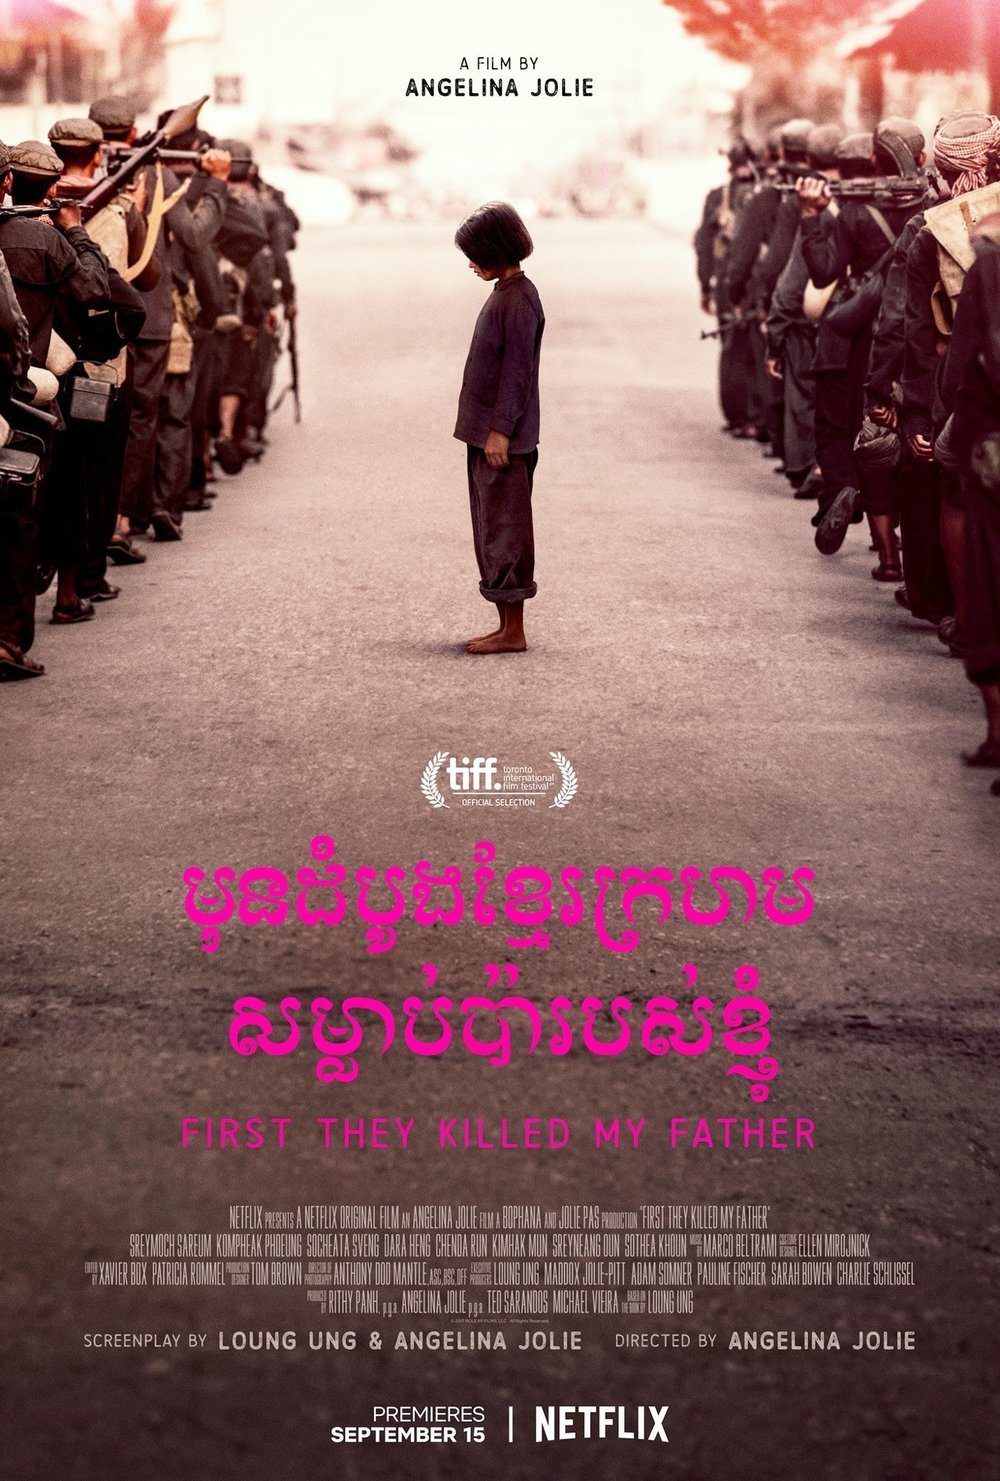 First They Killed My Father - Based on the book of the same name, directed by Angelina Jolie, the film shows the chaos caused by the Khmer Rouge in Cambodia which displaced millions in the 1970s.